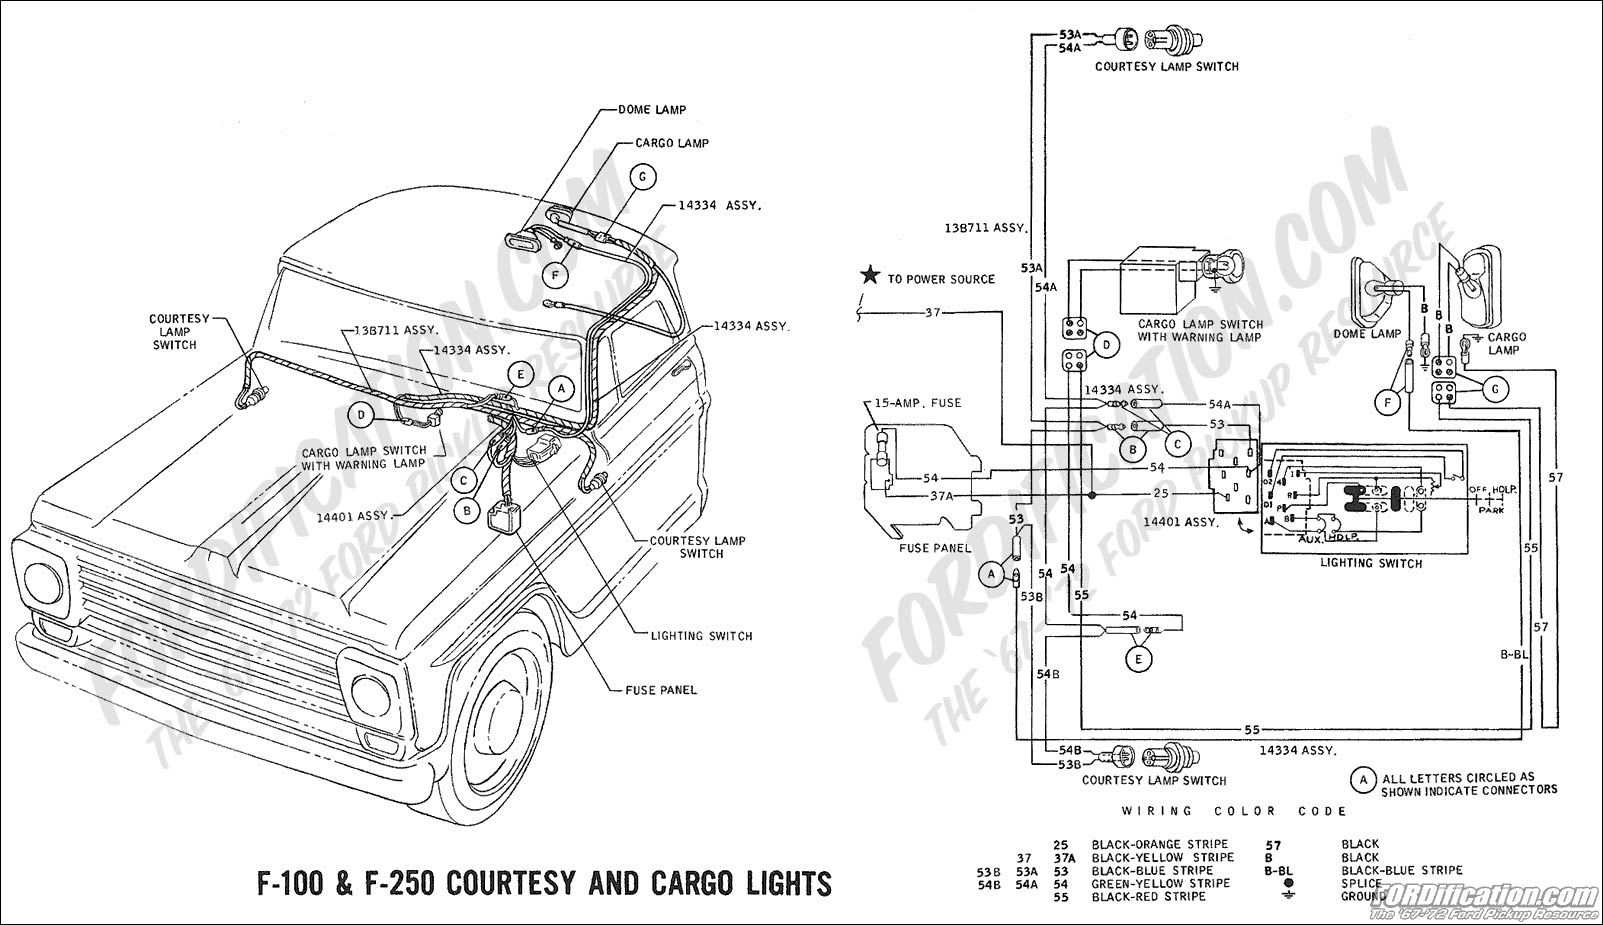 69 ford mustang alternator wiring diagram ethernet plug truck technical drawings and schematics - section h diagrams